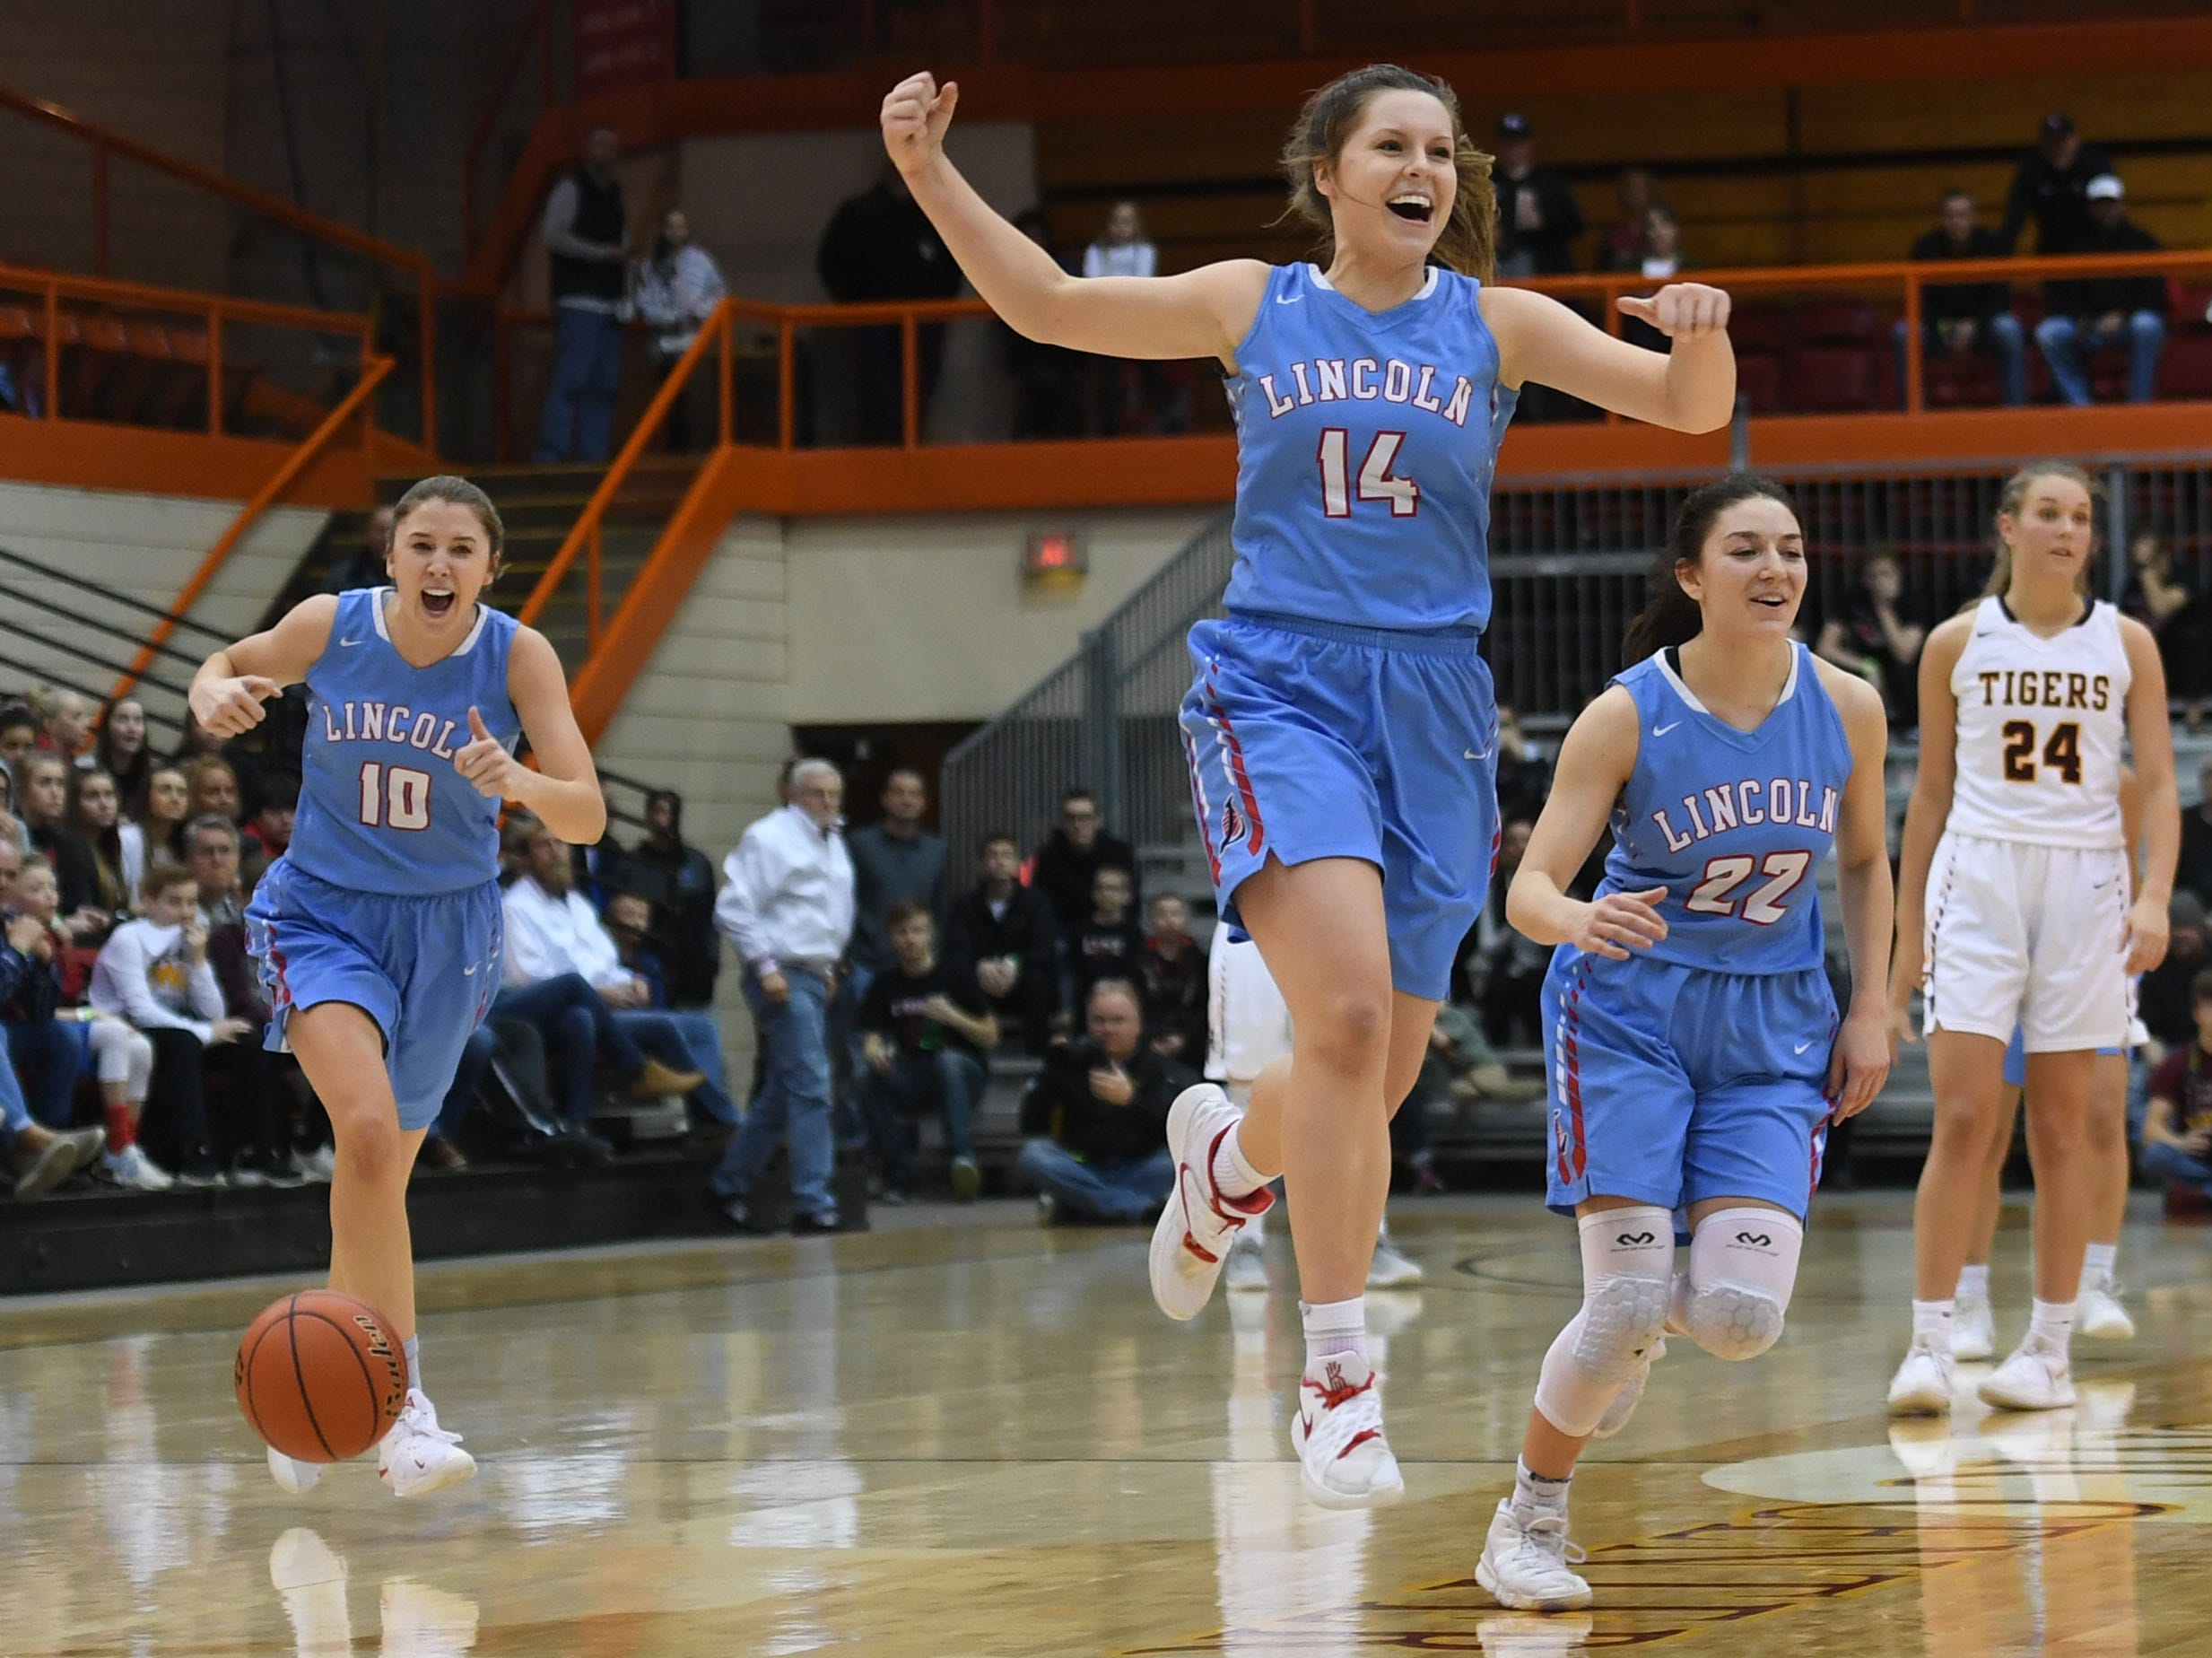 Lincoln's Morgan Hansen (10), Emma Osmundson (14) and  Brooke Brown (22) run off the court after their win against Harrisburg in the Class AA semifinals Thursday, March 15, in Rapid City.